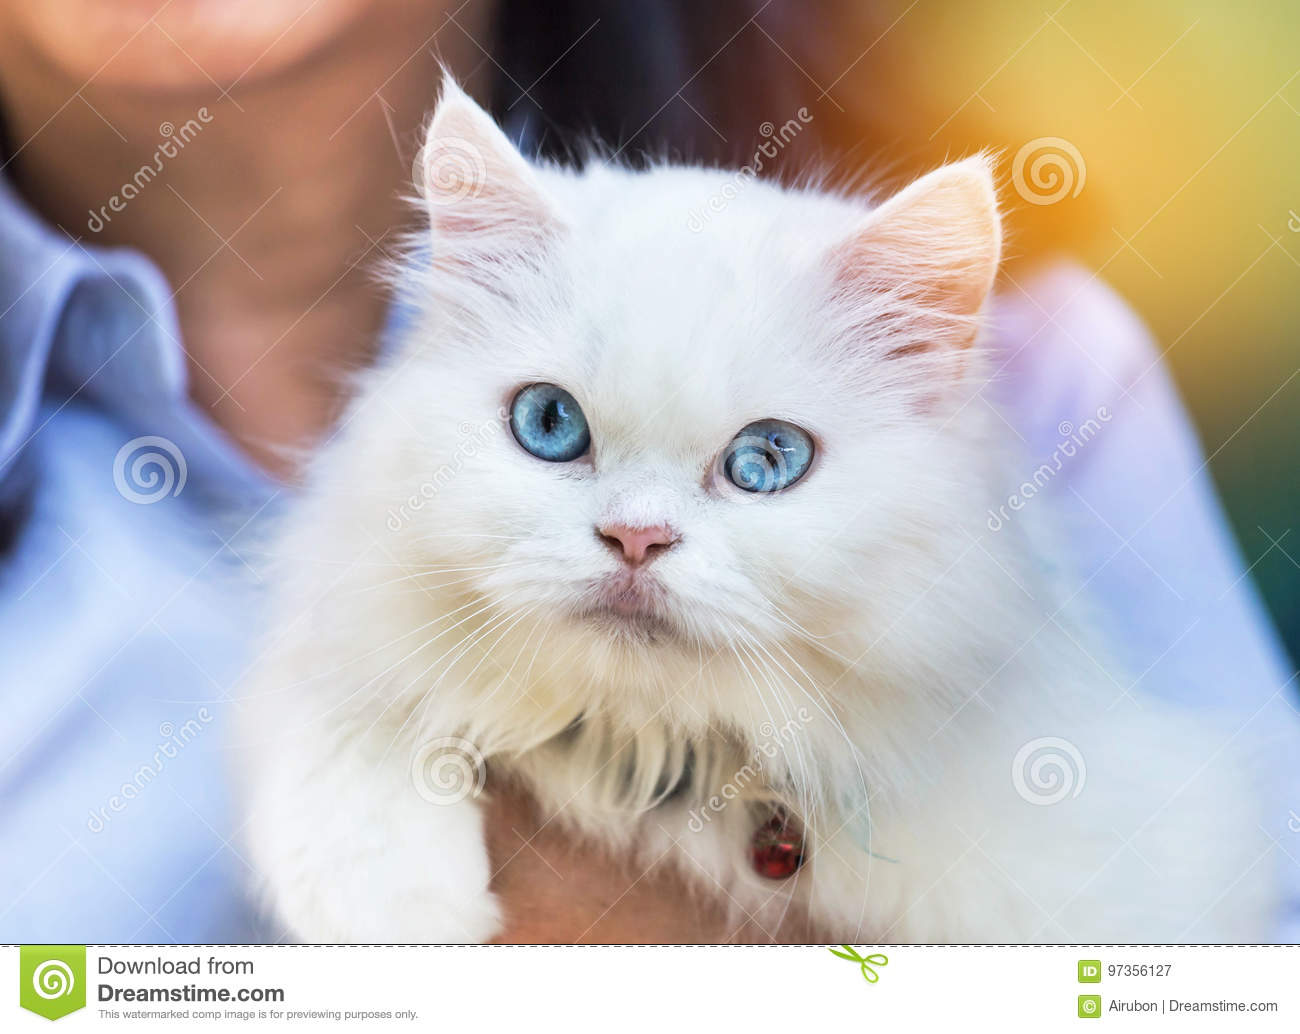 Close Up White Persian Cat Looking With Blue Eyes Stock Image Image Of Cute Beauty 97356127